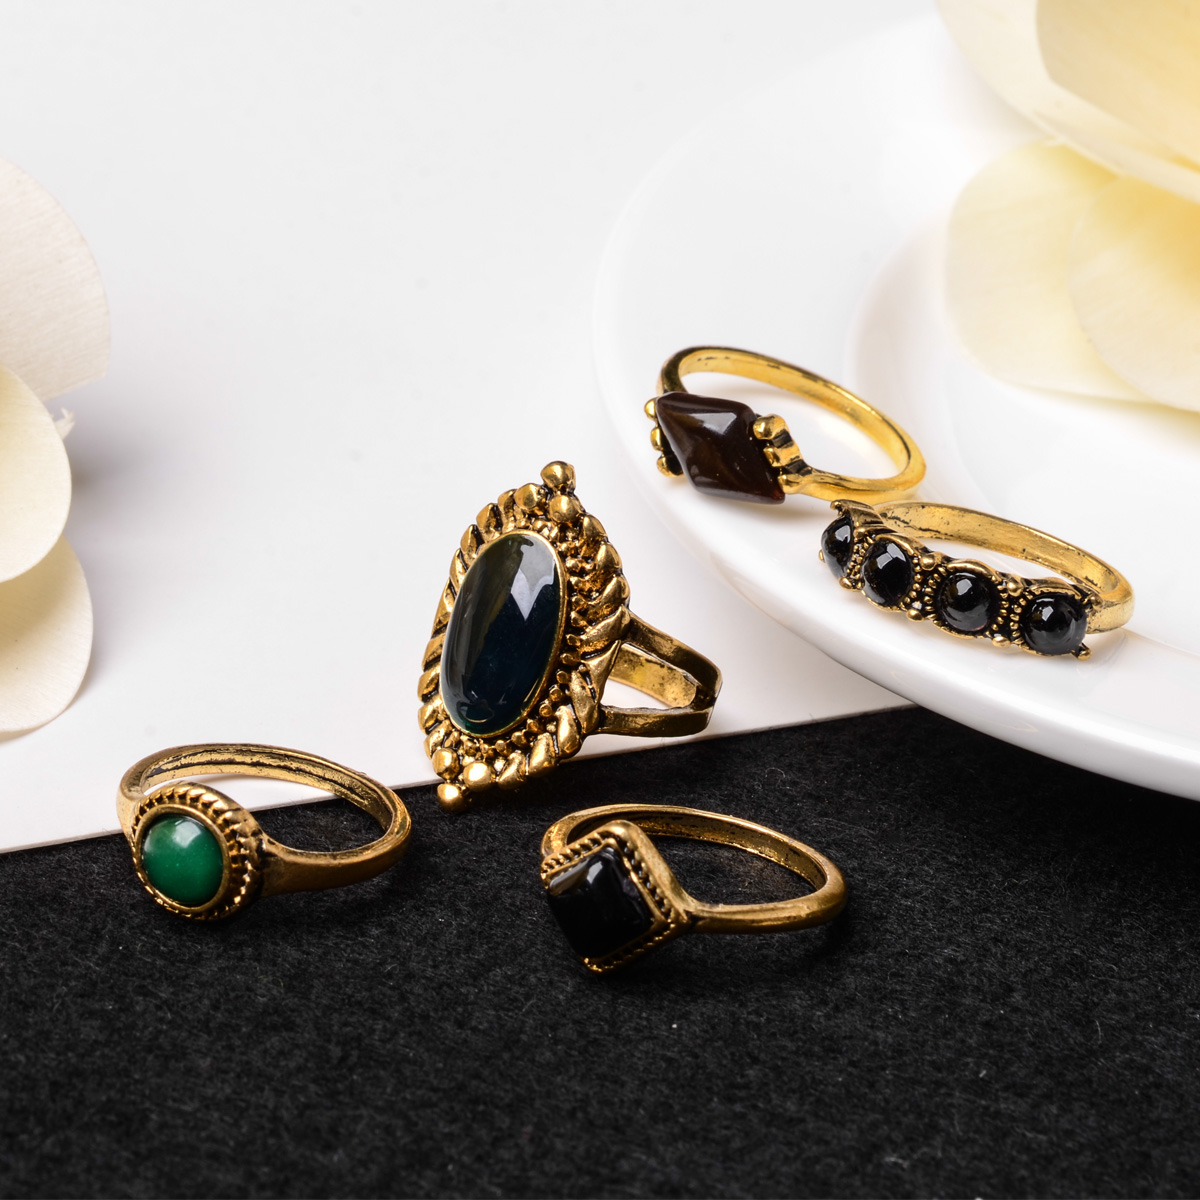 Charming Bohemian Midi Ring Set Antique Gold Color Vintage Steampunk Anillos Knuckle Rings For Women Boho Jewelry Shellhard 5pcs